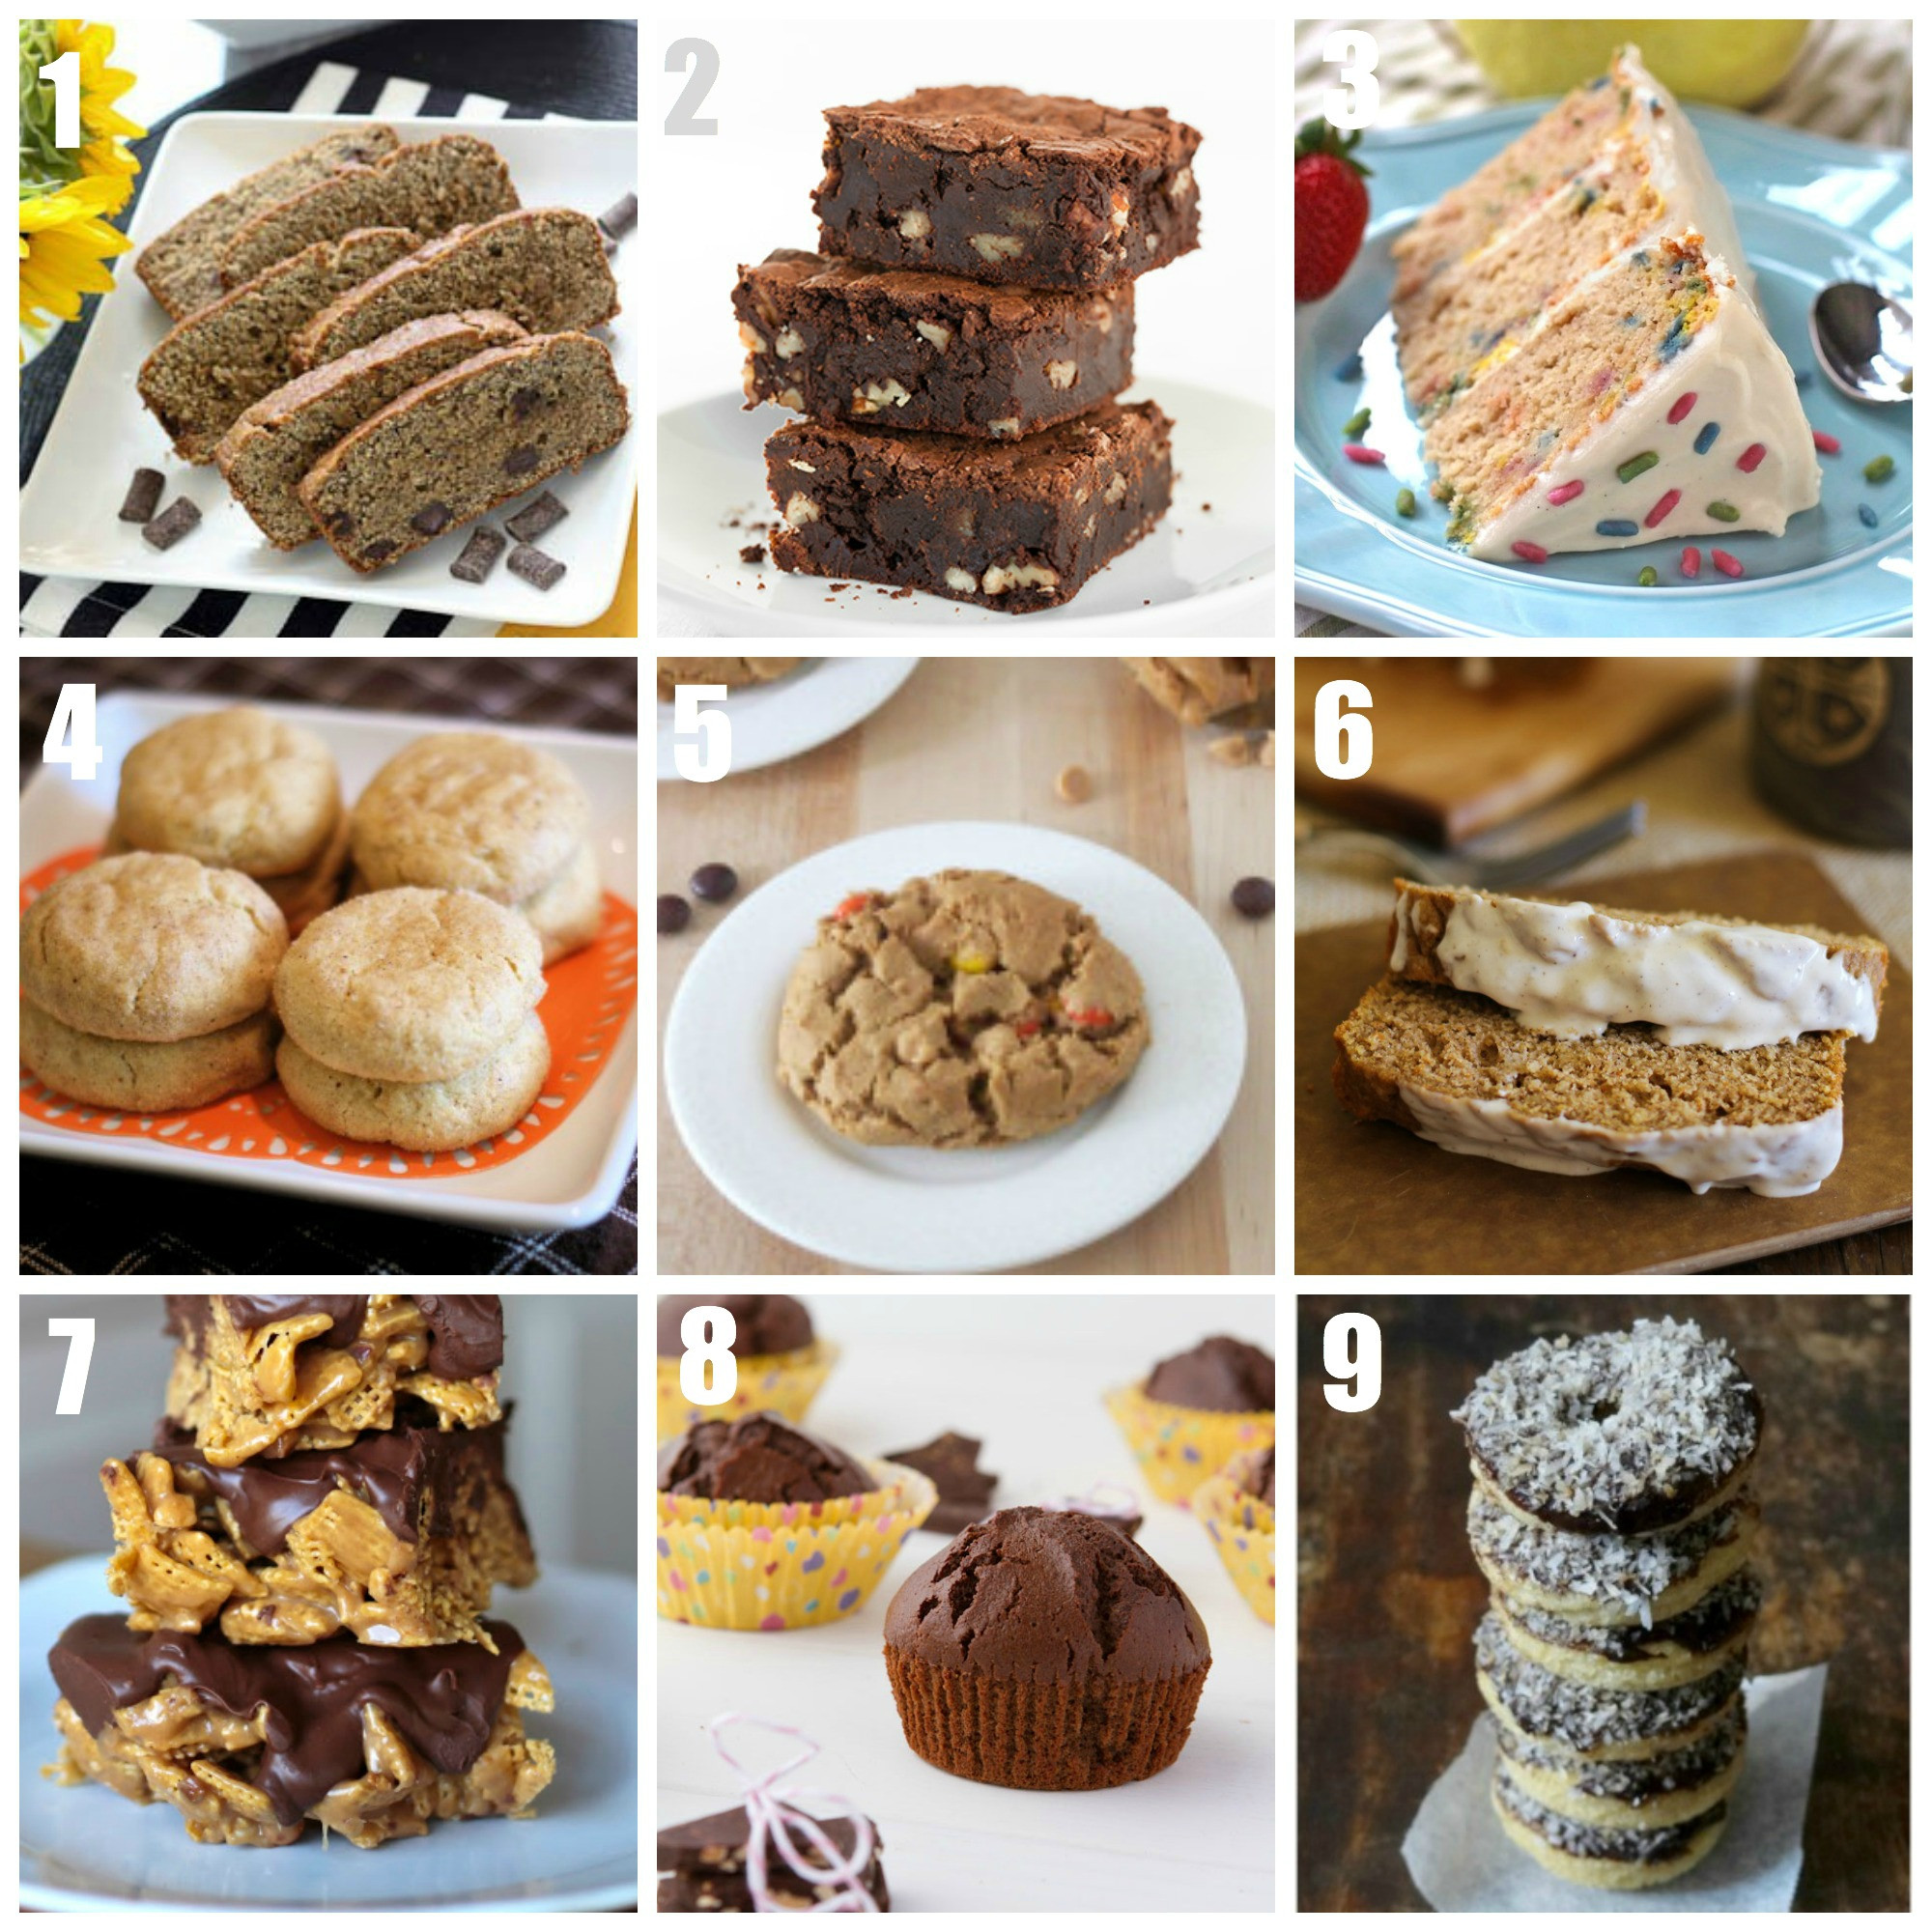 Gluten Free Treats Recipes  Easy Gluten Free Dessert Recipes